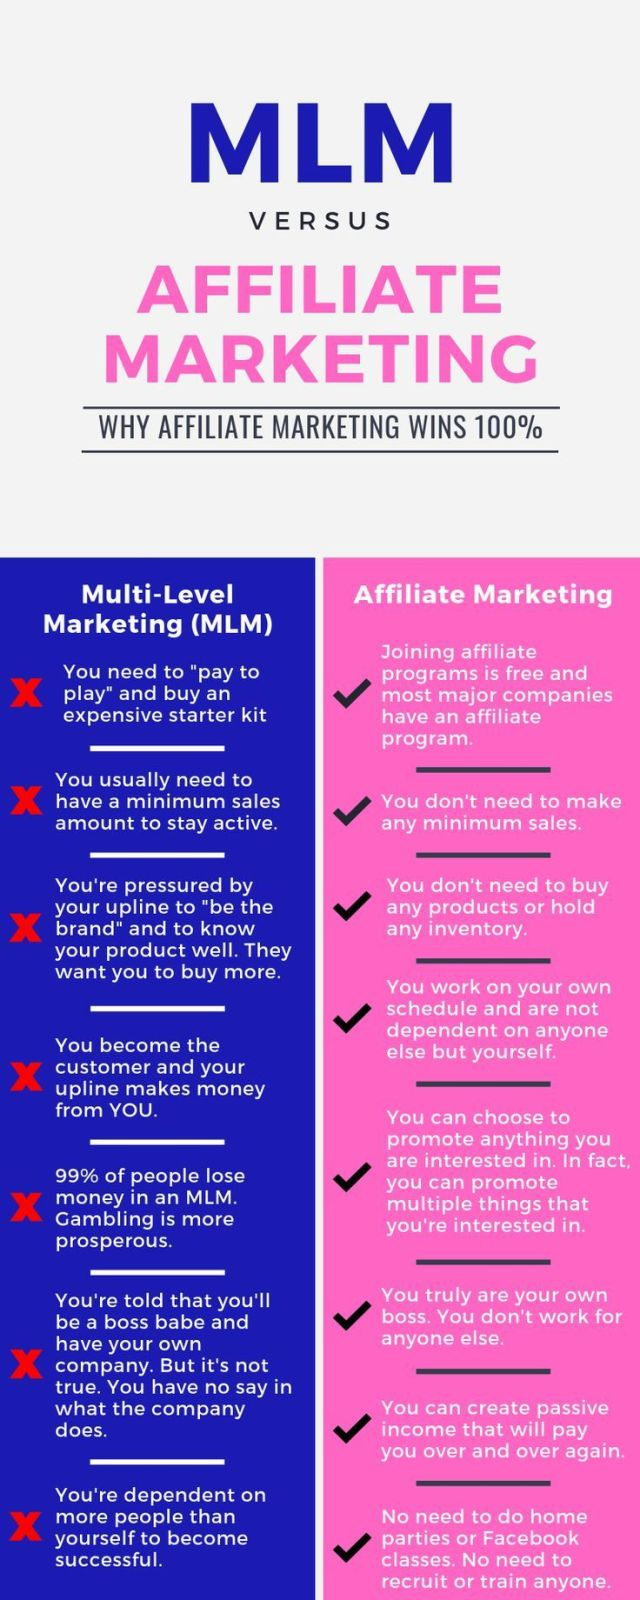 Affiliate Marketing vs MLM - What's The Difference?